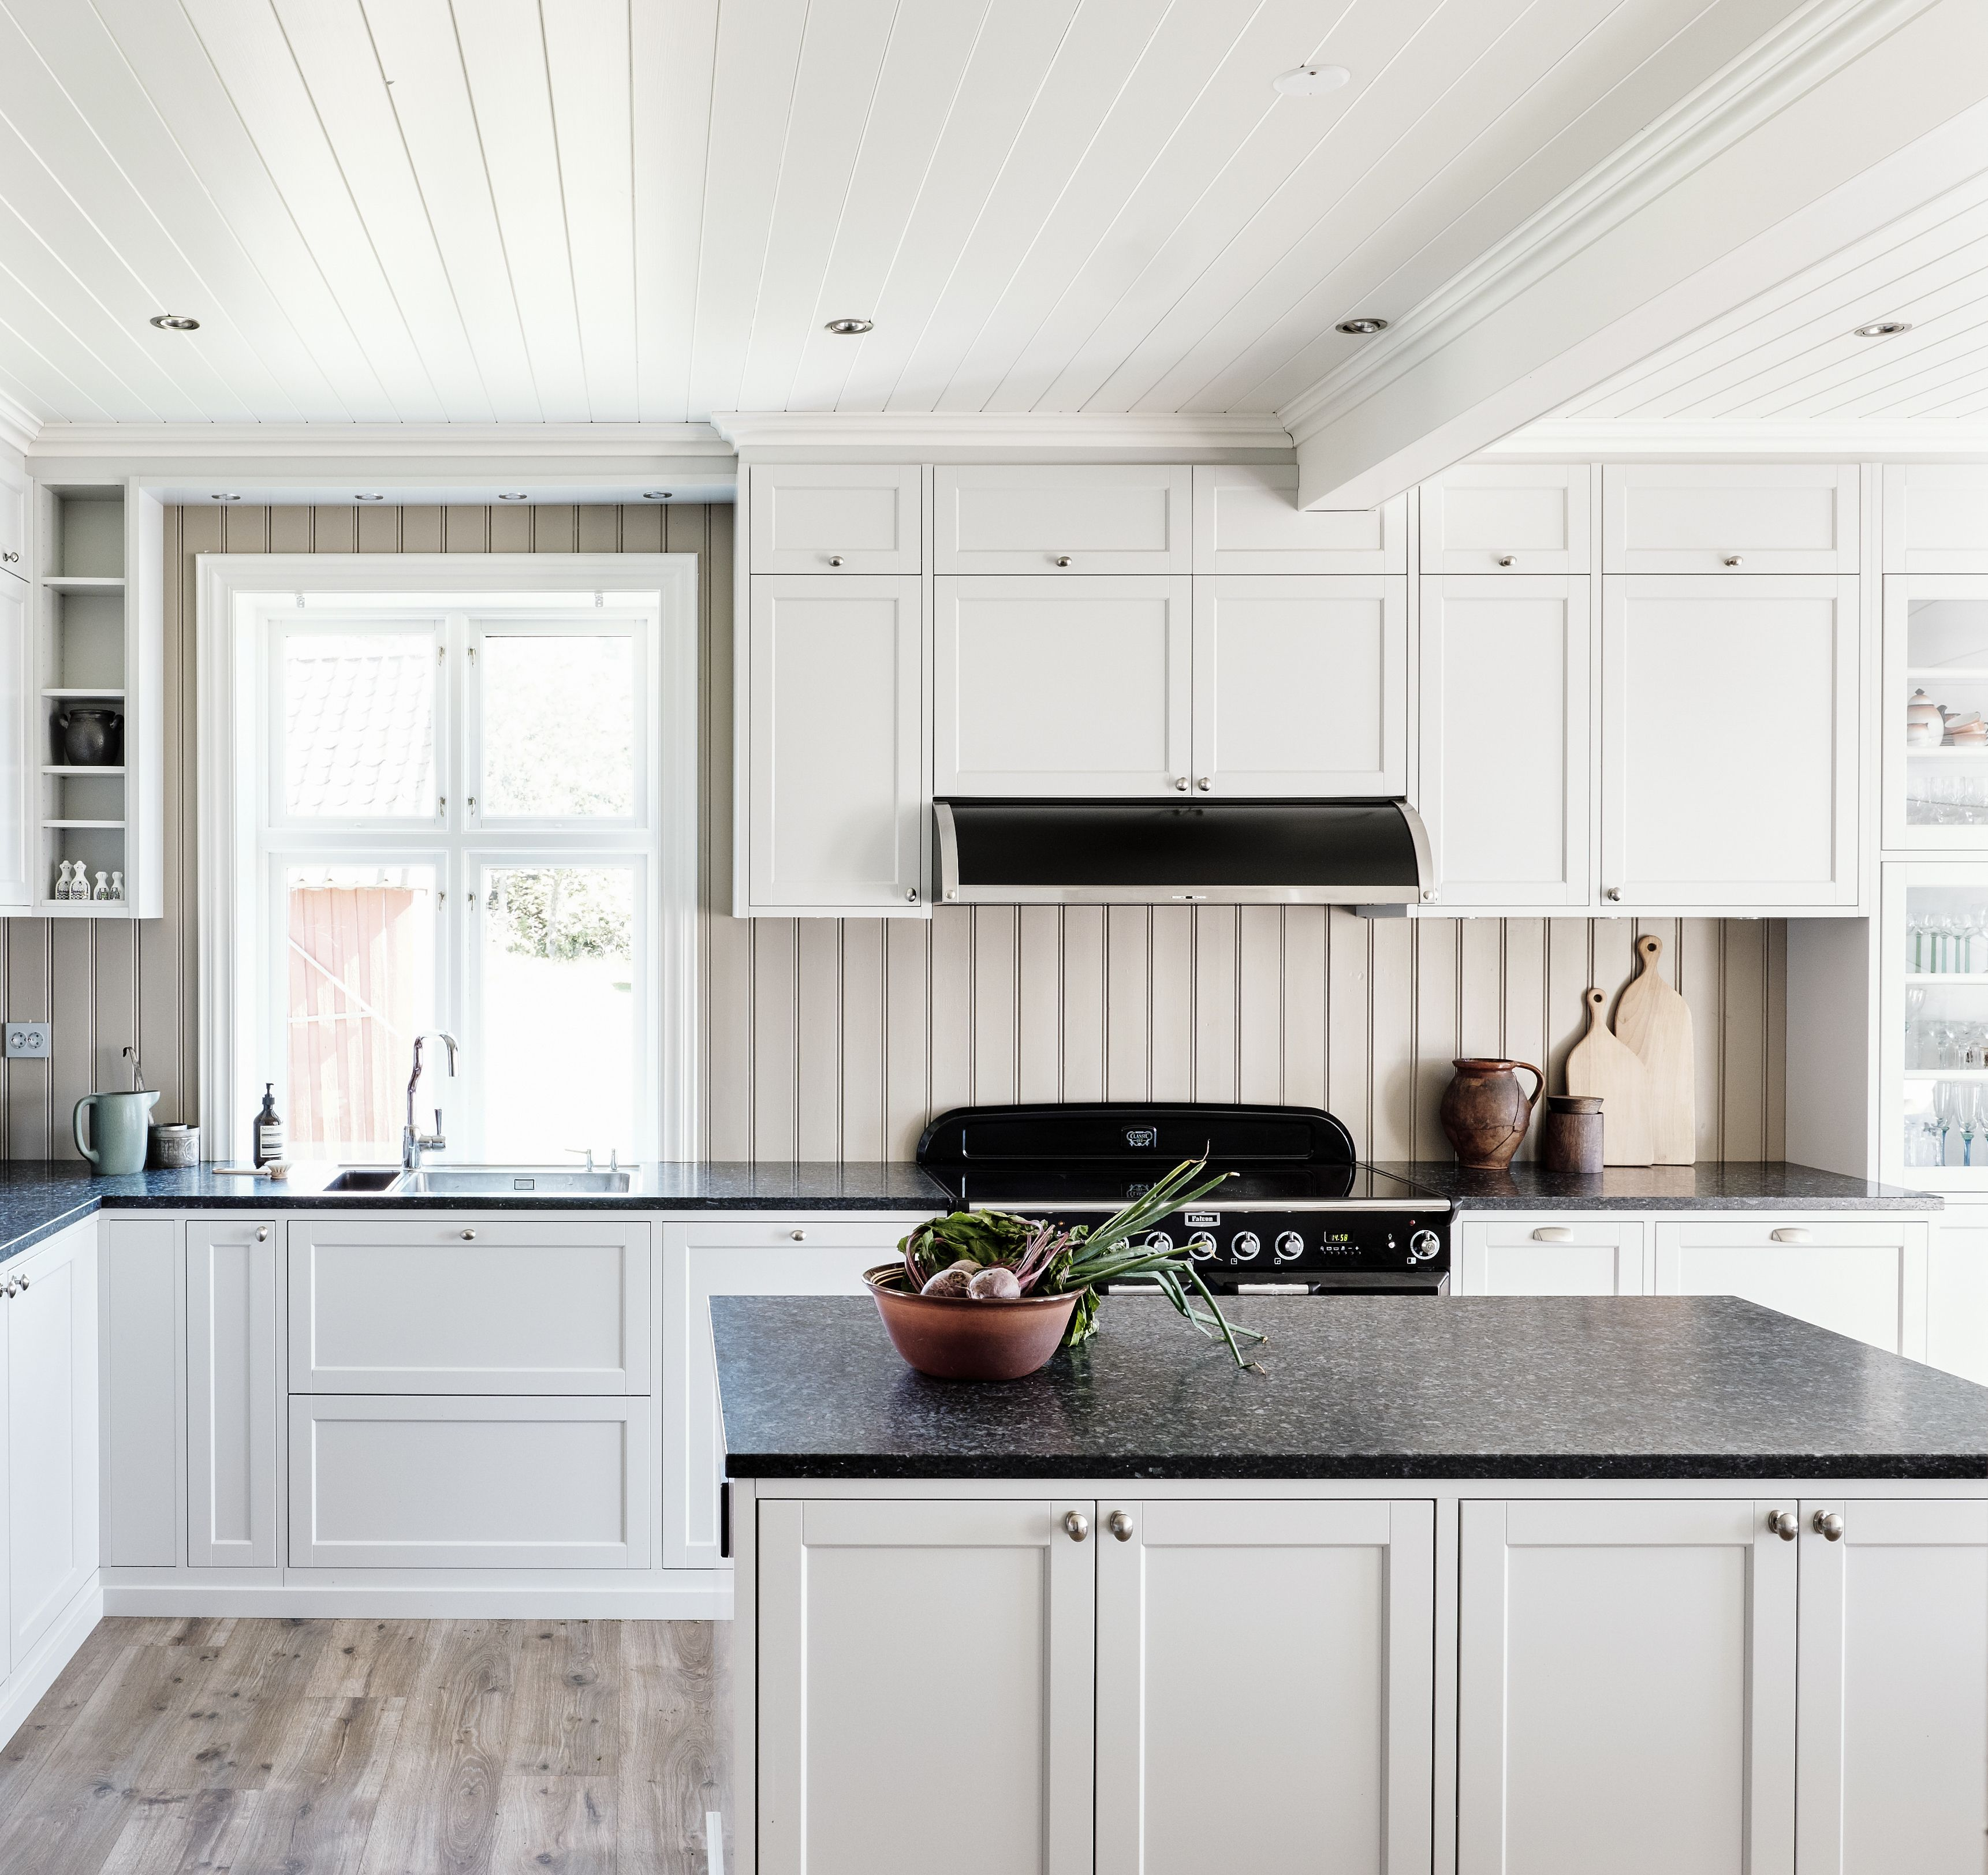 For the ultimate 100% natural kitchen worktop, look no further than ...